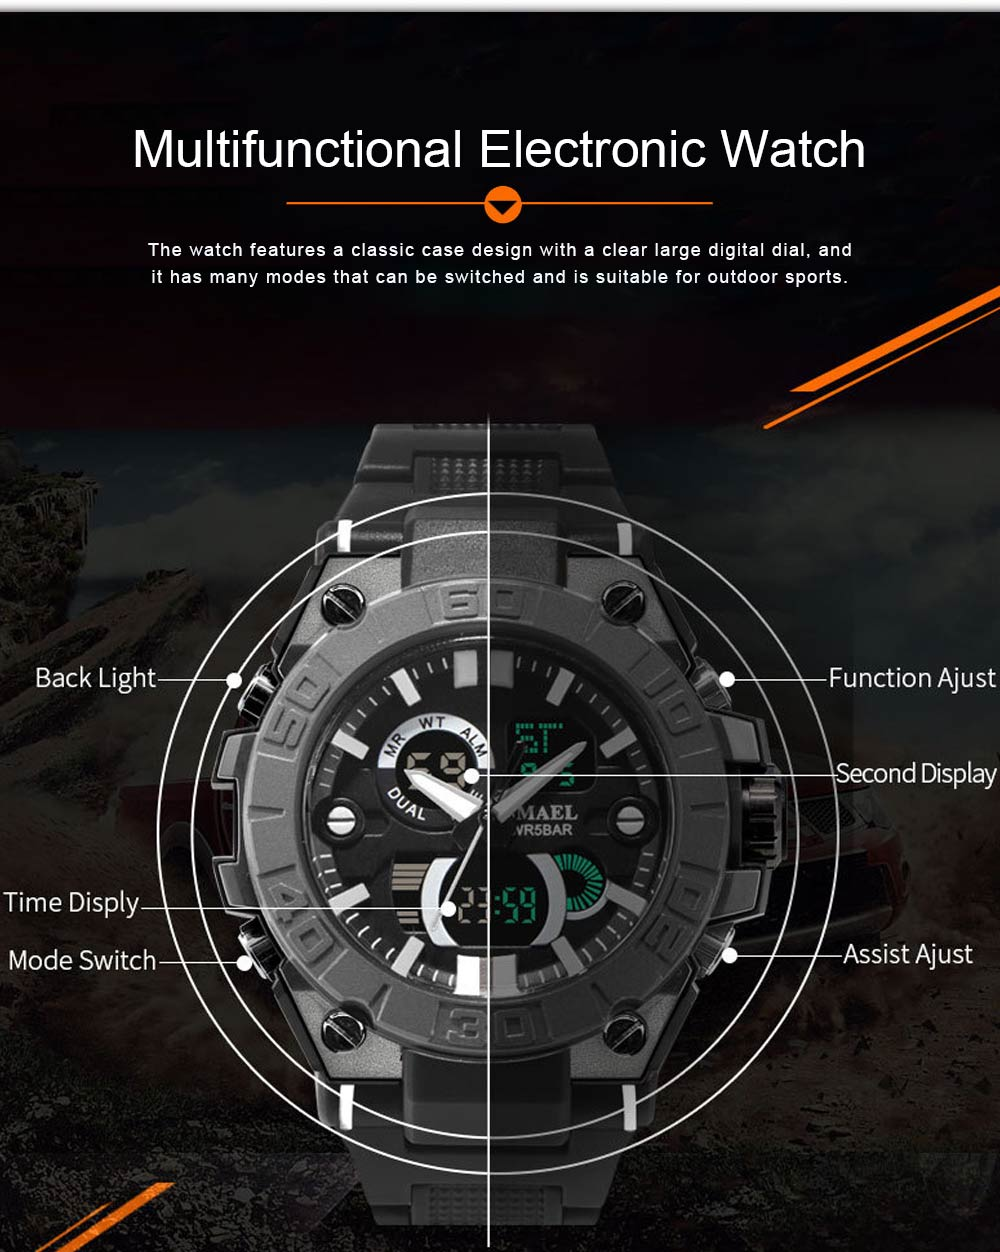 New Watch for Men Outdoor Sports Waterproof Double Display Multifunctional Luminous Electronic Watch 4